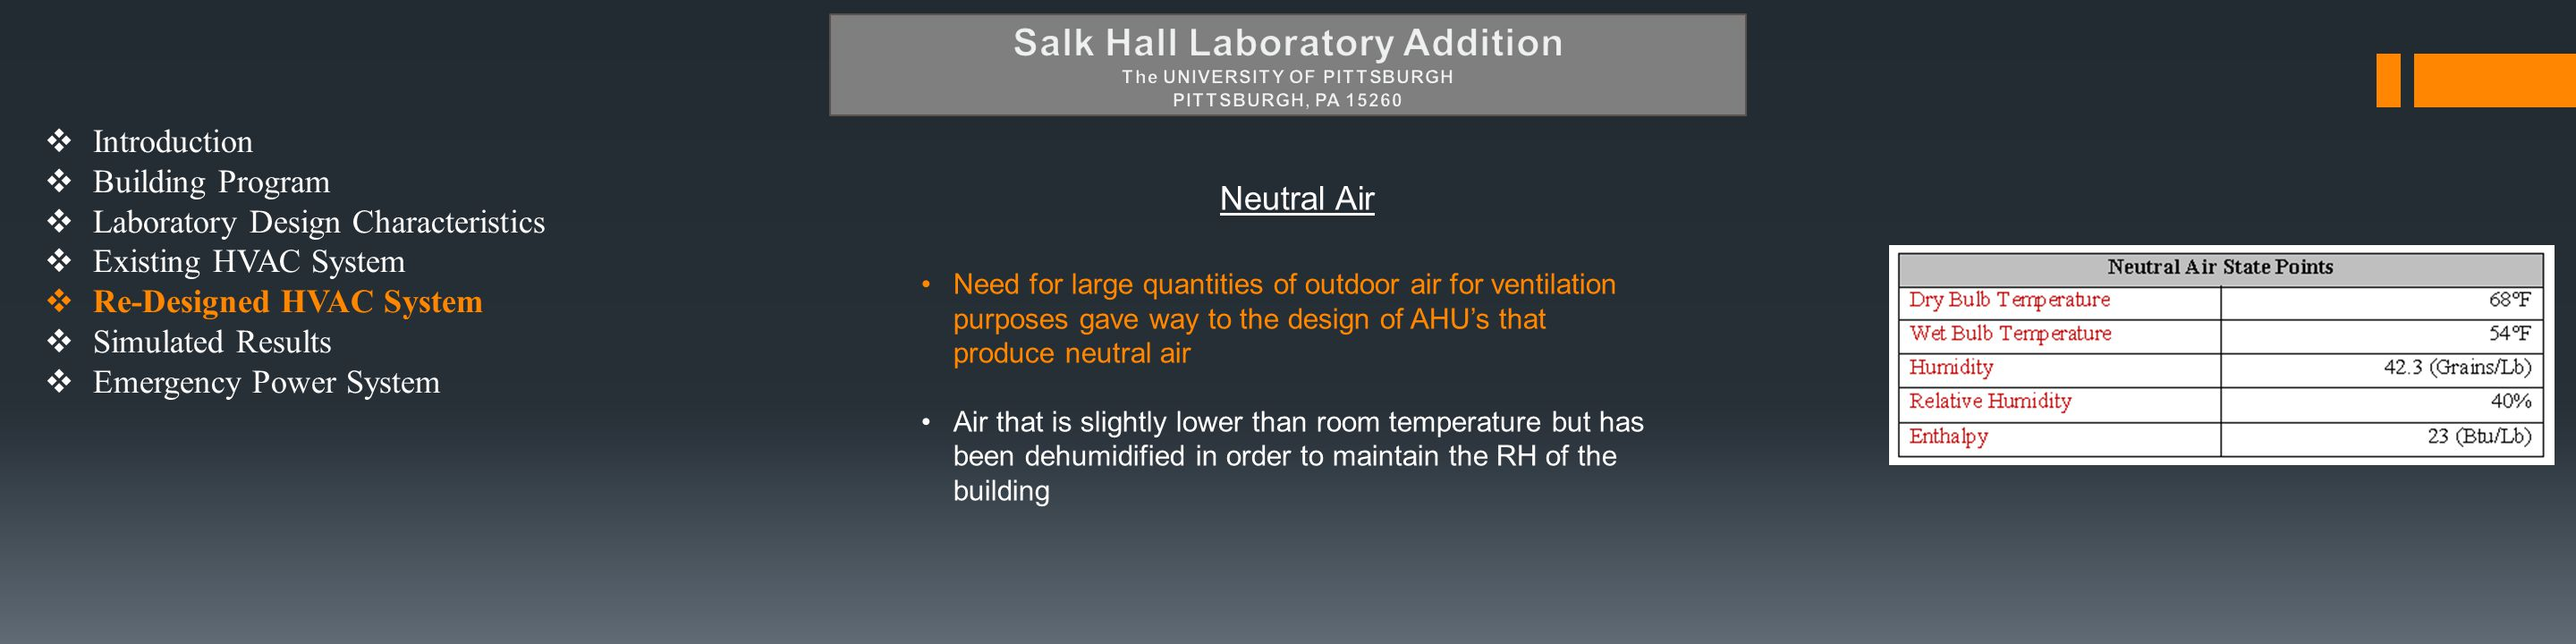  Introduction  Building Program  Laboratory Design Characteristics  Existing HVAC System  Re-Designed HVAC System  Simulated Results  Emergency Power System Neutral Air Need for large quantities of outdoor air for ventilation purposes gave way to the design of AHU's that produce neutral air Air that is slightly lower than room temperature but has been dehumidified in order to maintain the RH of the building